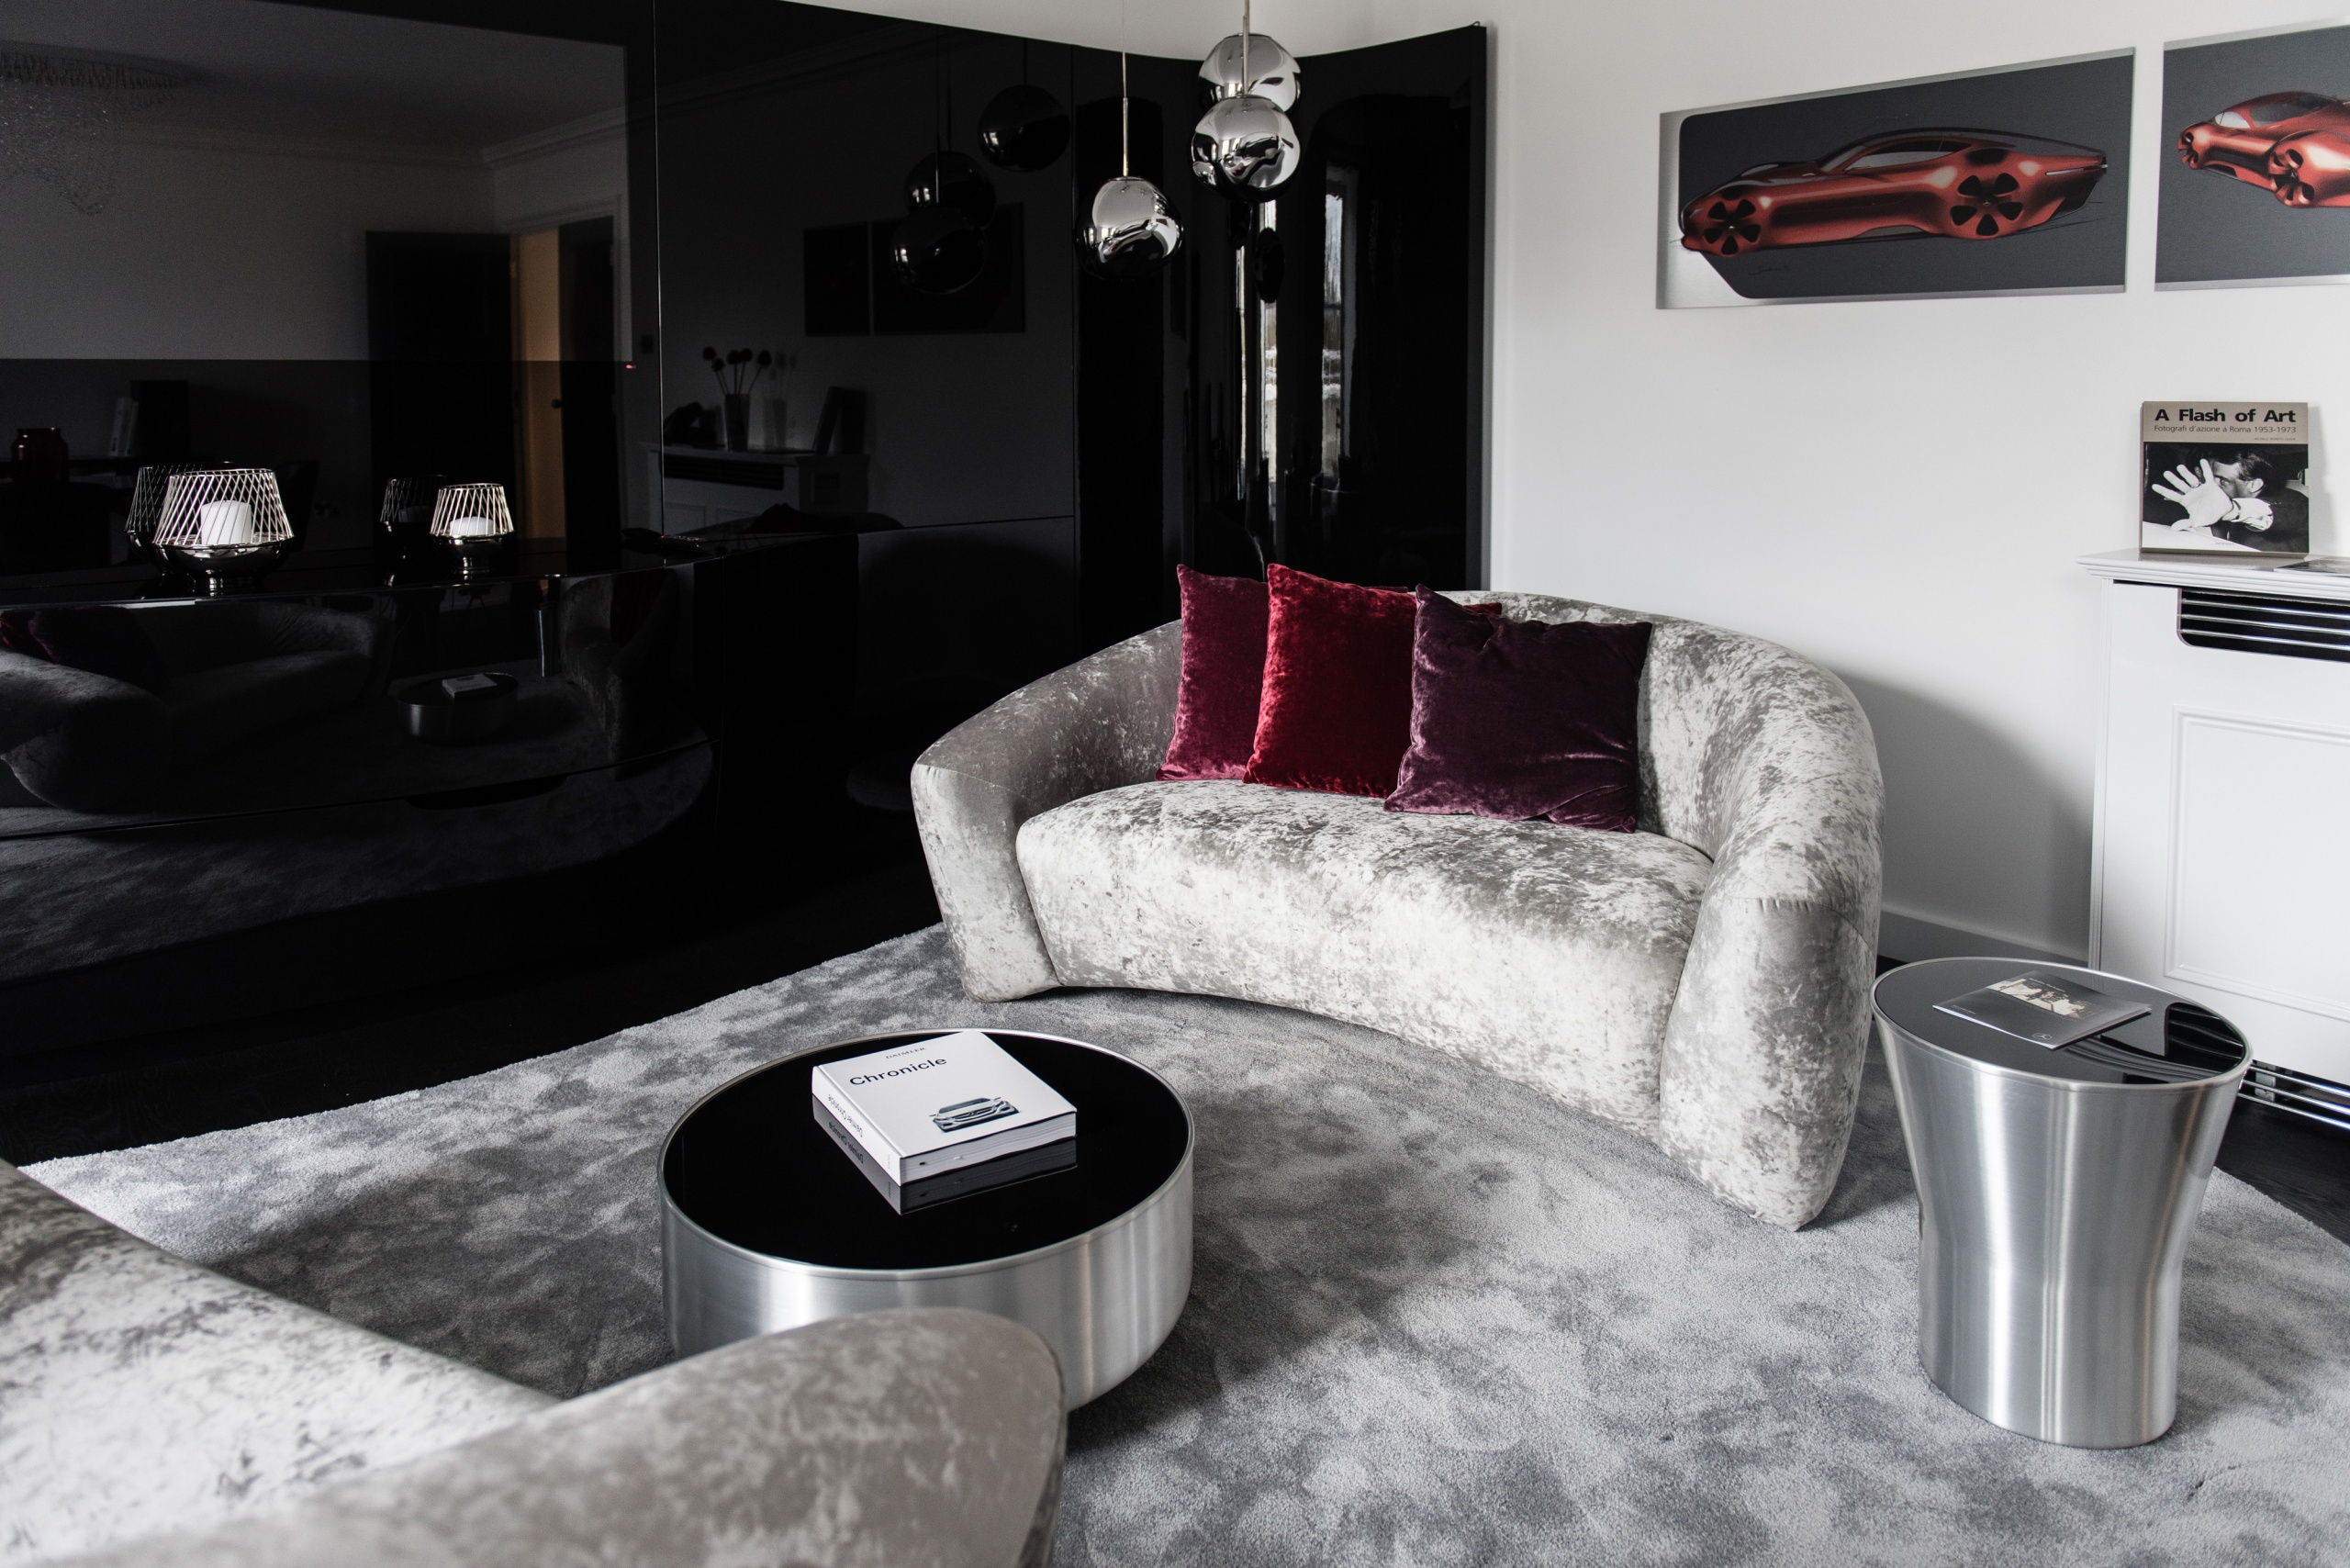 In Kooperation mit der Frasers Hospitality Group, einem international führenden Anbieter von Luxus-Appartements mit Servicedienstleistungen, steigt Mercedes-Benz in den Markt der Premium-Business-Appartements ein. Mercedes-Benz Living @ Fraser: Die Kombination aus sinnlichen Flächen, klaren Formen und innovativen Technologien machen modernen Luxus und Mercedes-Benz Exklusivität erlebbar. // Mercedes-Benz is entering the market for premium business apartments in collaboration with the Frasers Hospitality Group, a leading international provider of luxury serviced apartments. Mercedes-Benz Living @ Fraser: Cutting edge design, and innovative technologies give a sense of Mercedes-Benz exclusivity.